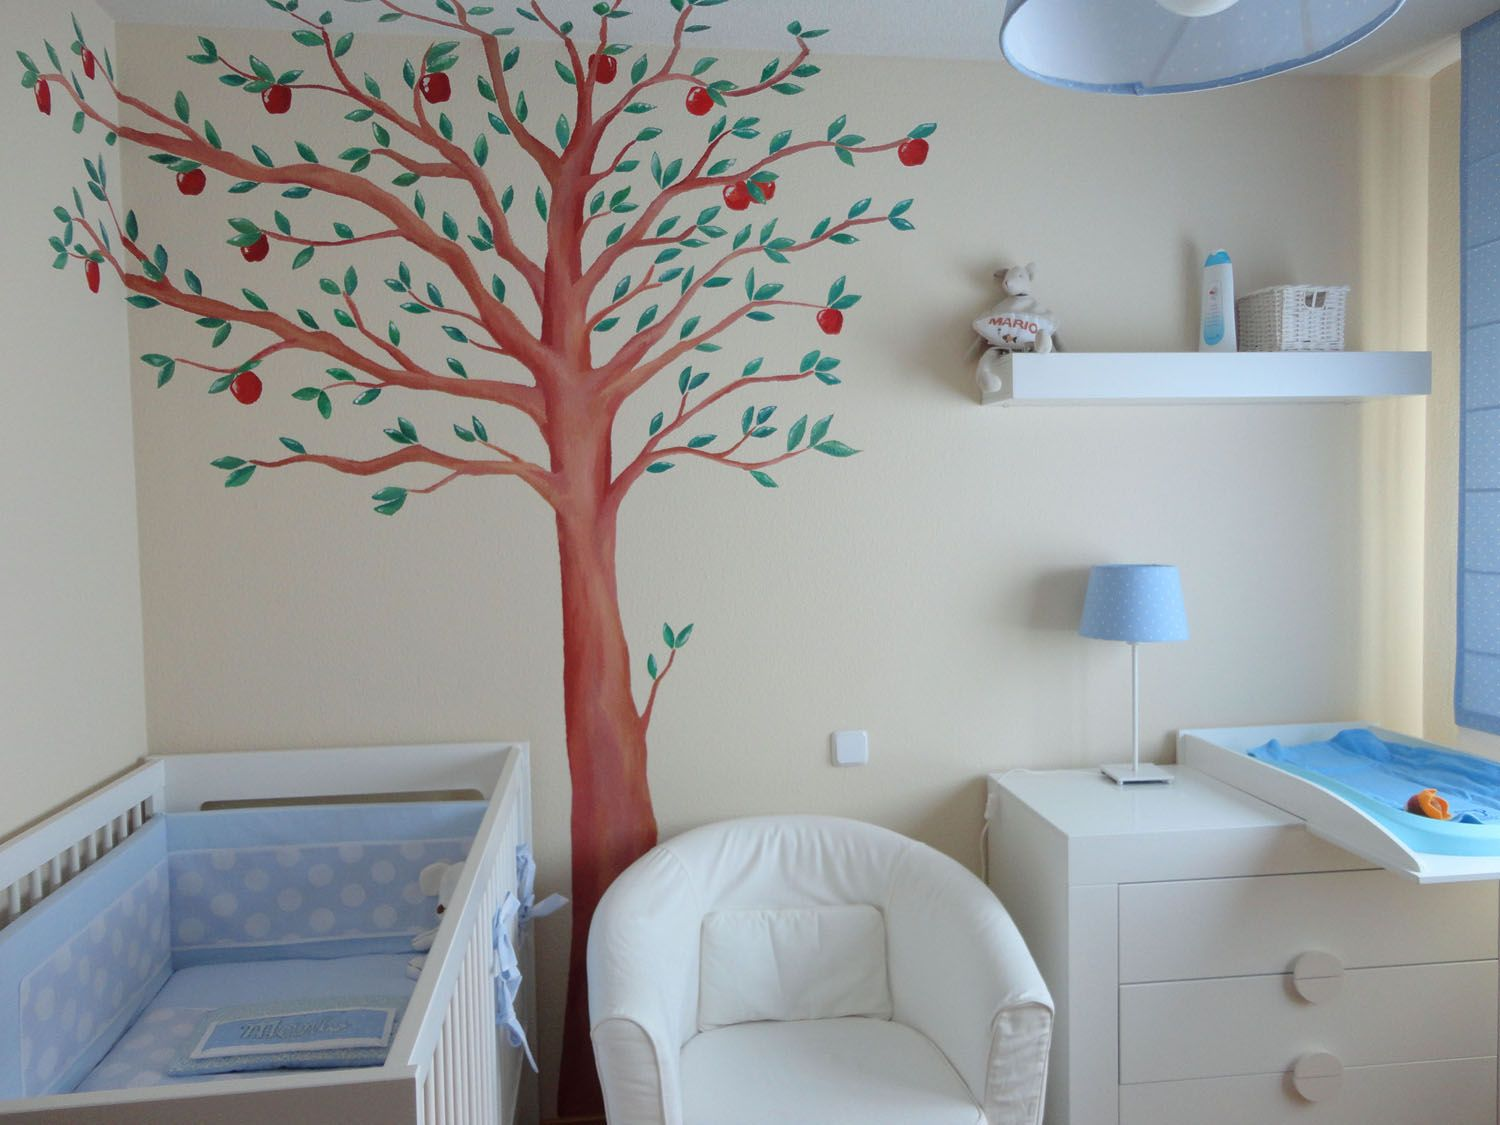 Murales Para Dormitorio Arboles Pintados En La Pared Rooms Pinterest